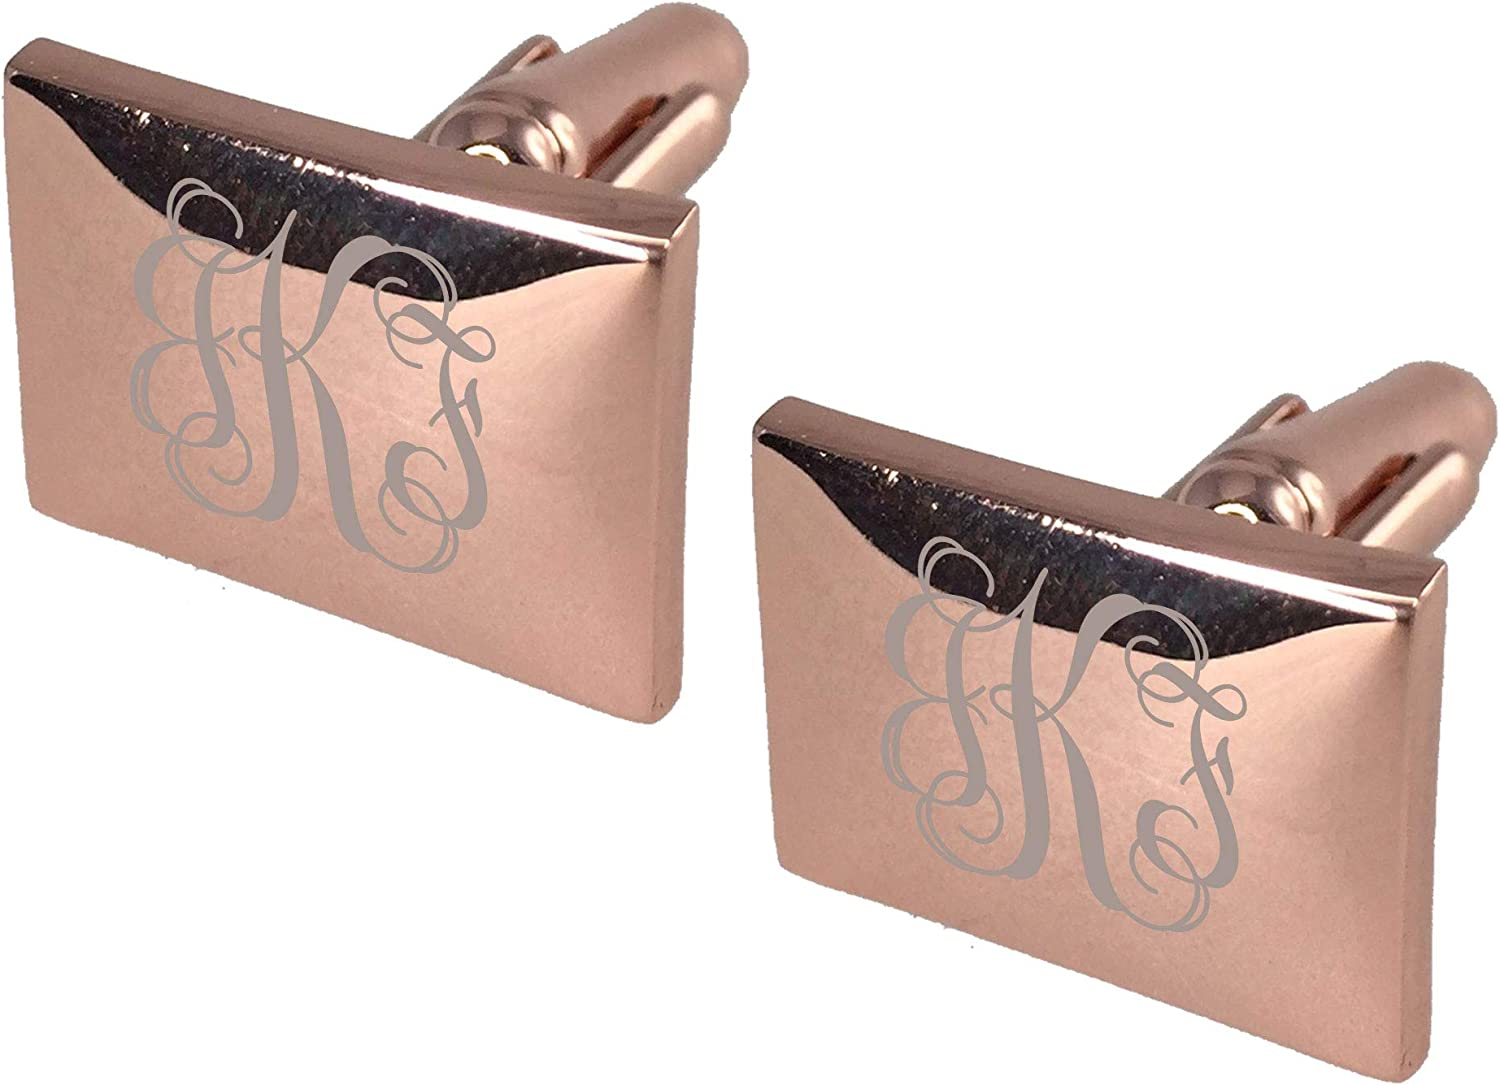 Personalized Visol Fedir Rose Gold Squared Cufflinks with Free Laser Engraving